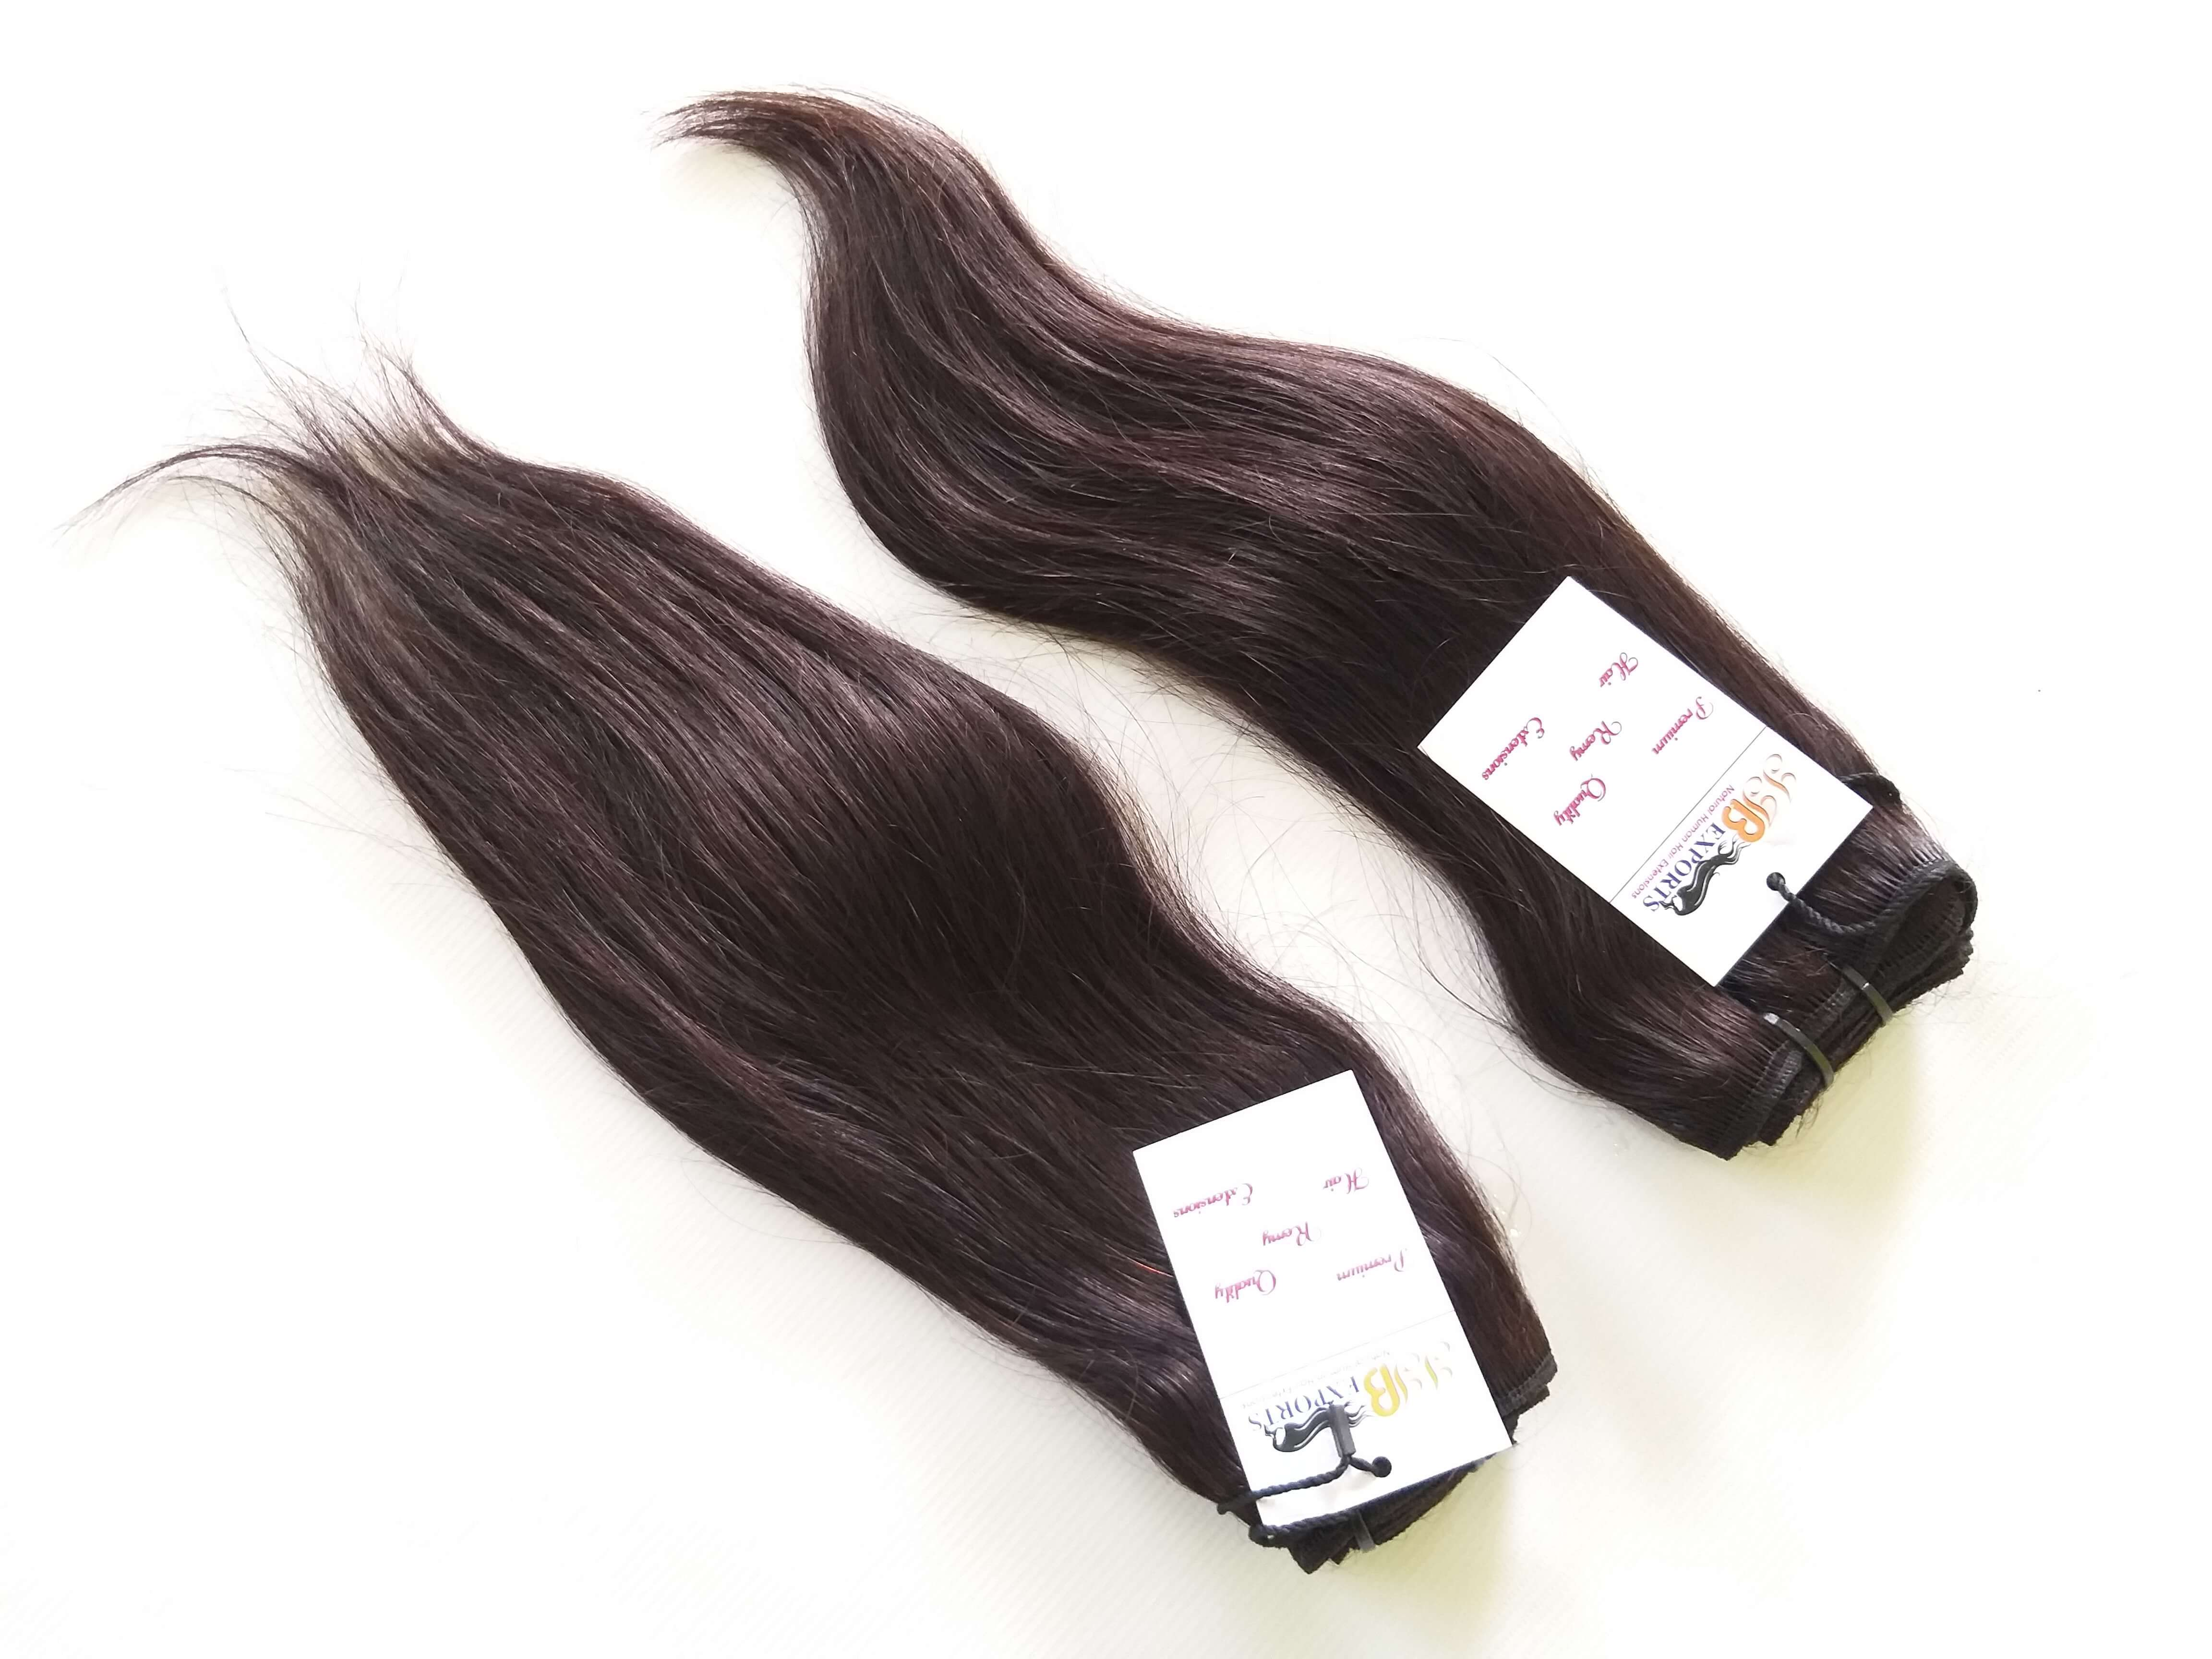 Factory Price top Quality Wholesale Indian Raw Virgin Hair Bundles curly/straight/wavy hair extensions